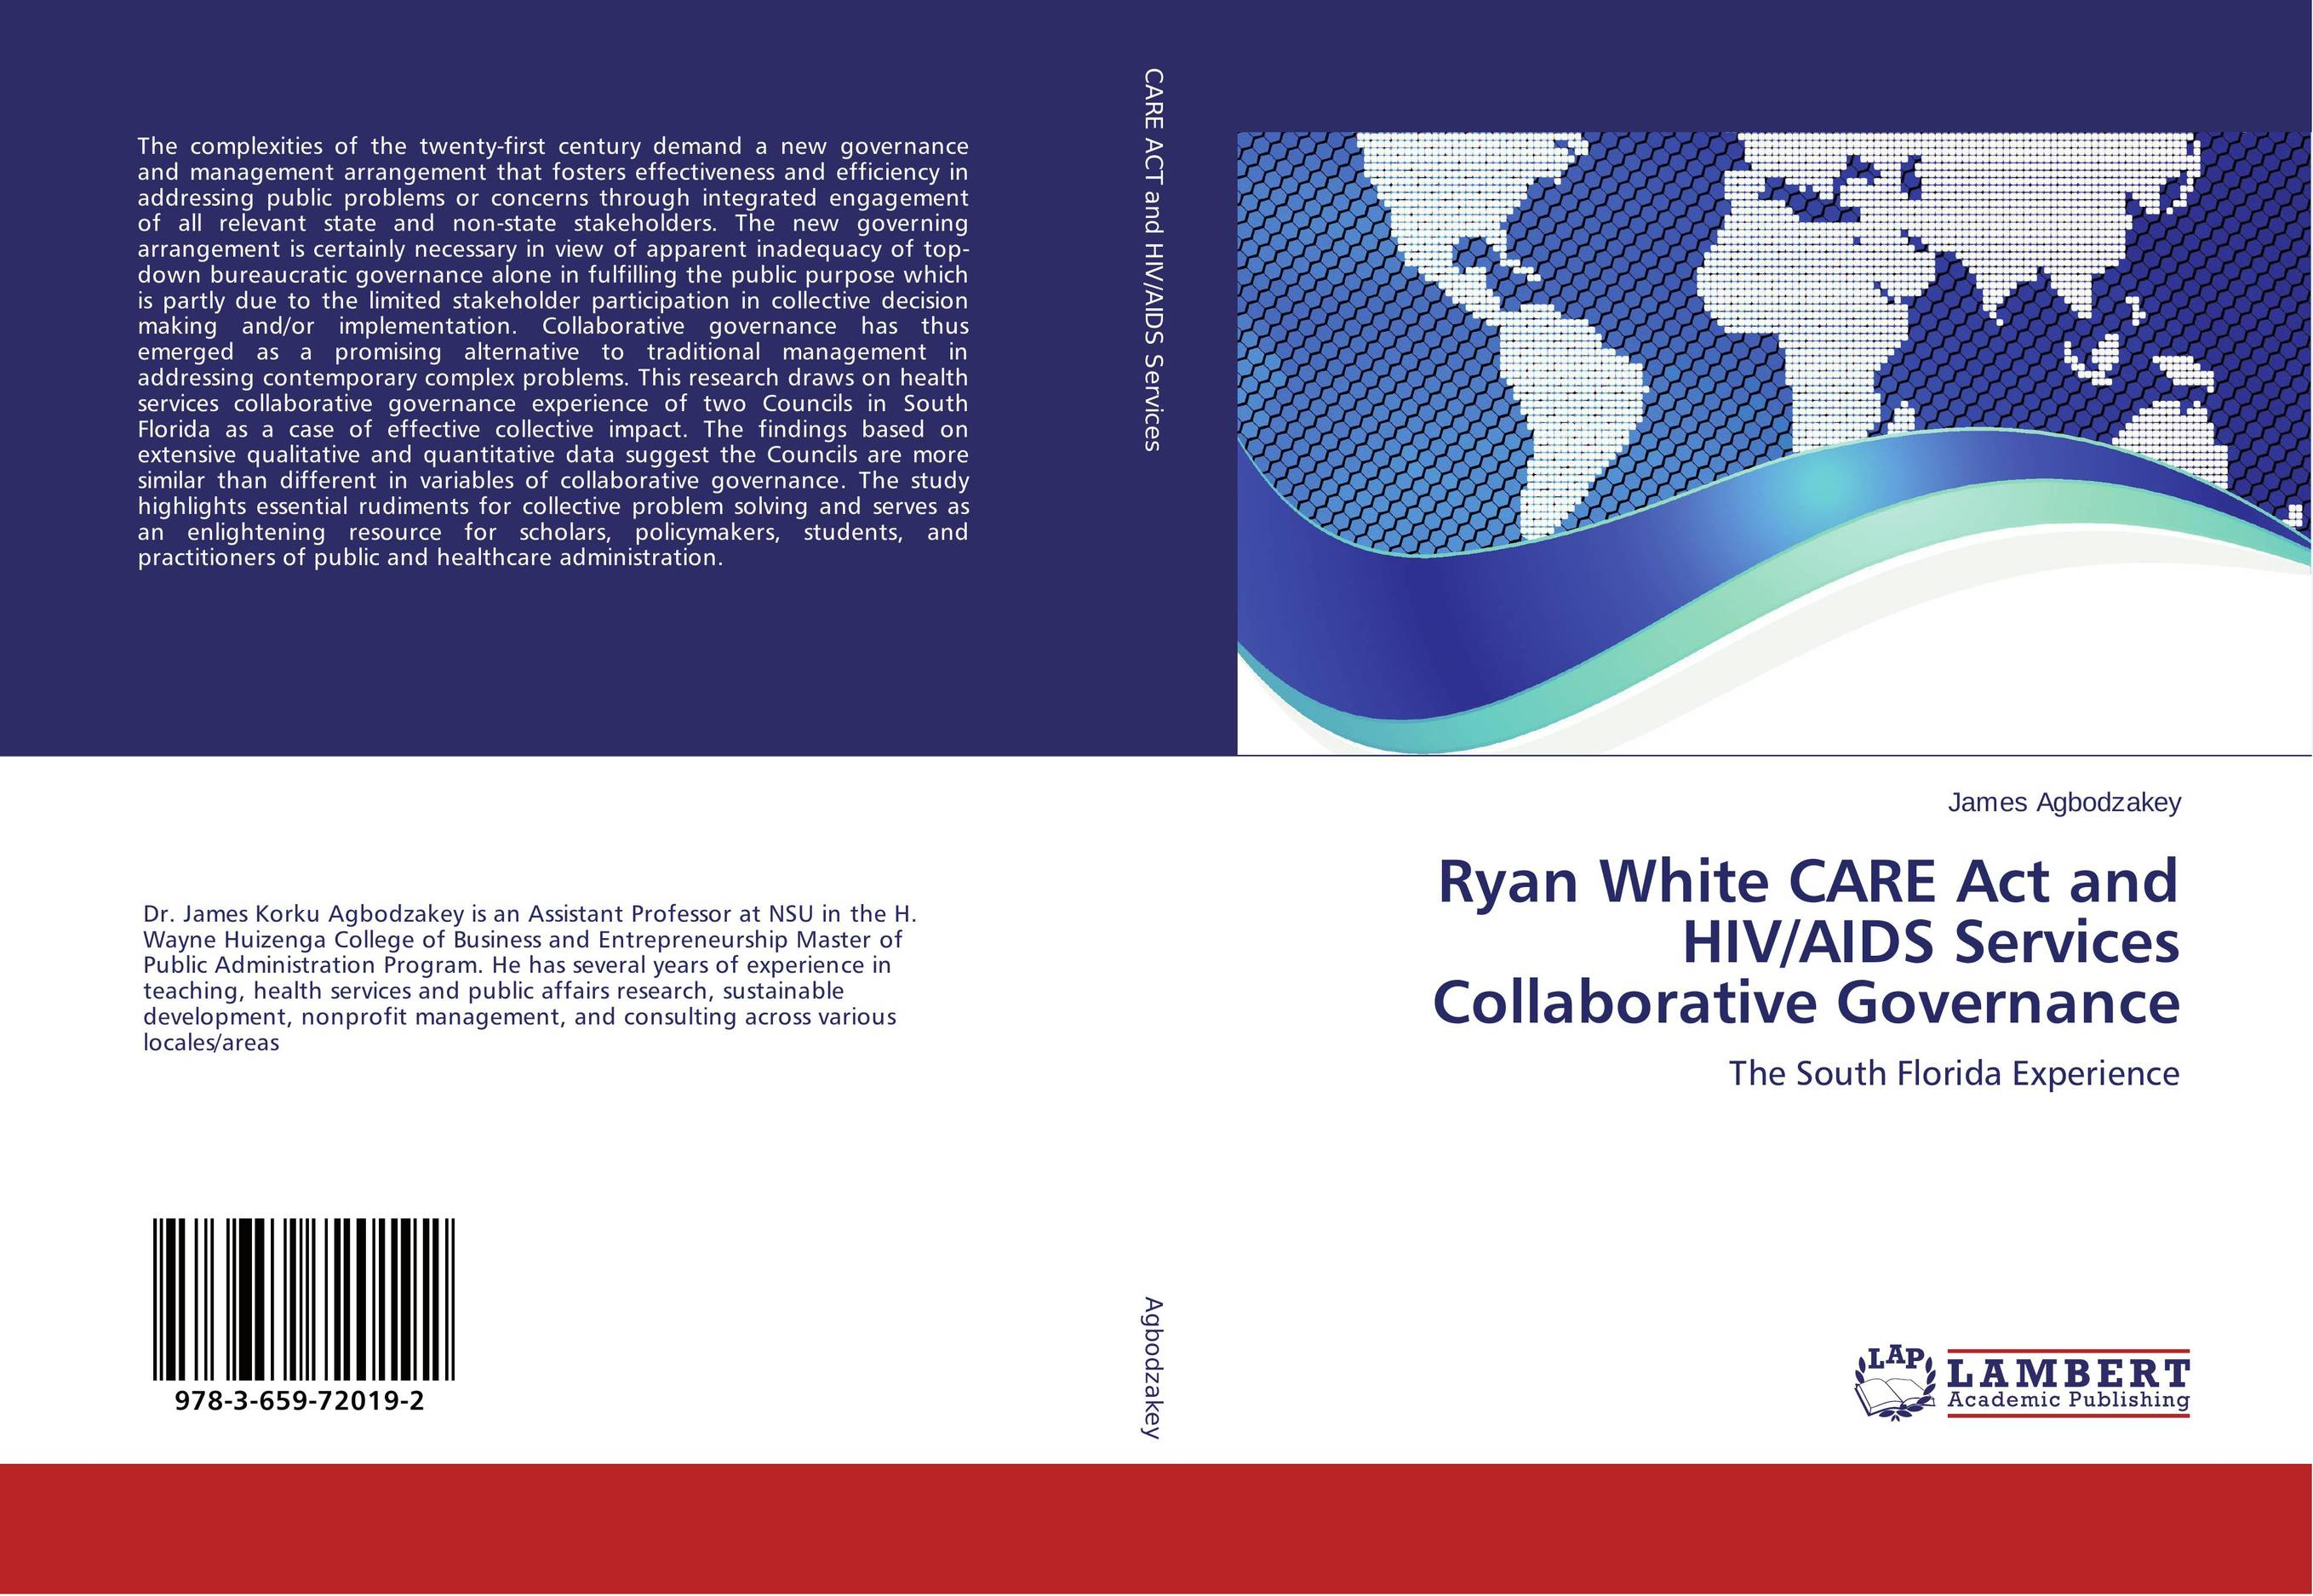 Ryan White CARE Act and HIV/AIDS Services Collaborative Governance corporate governance and firm value